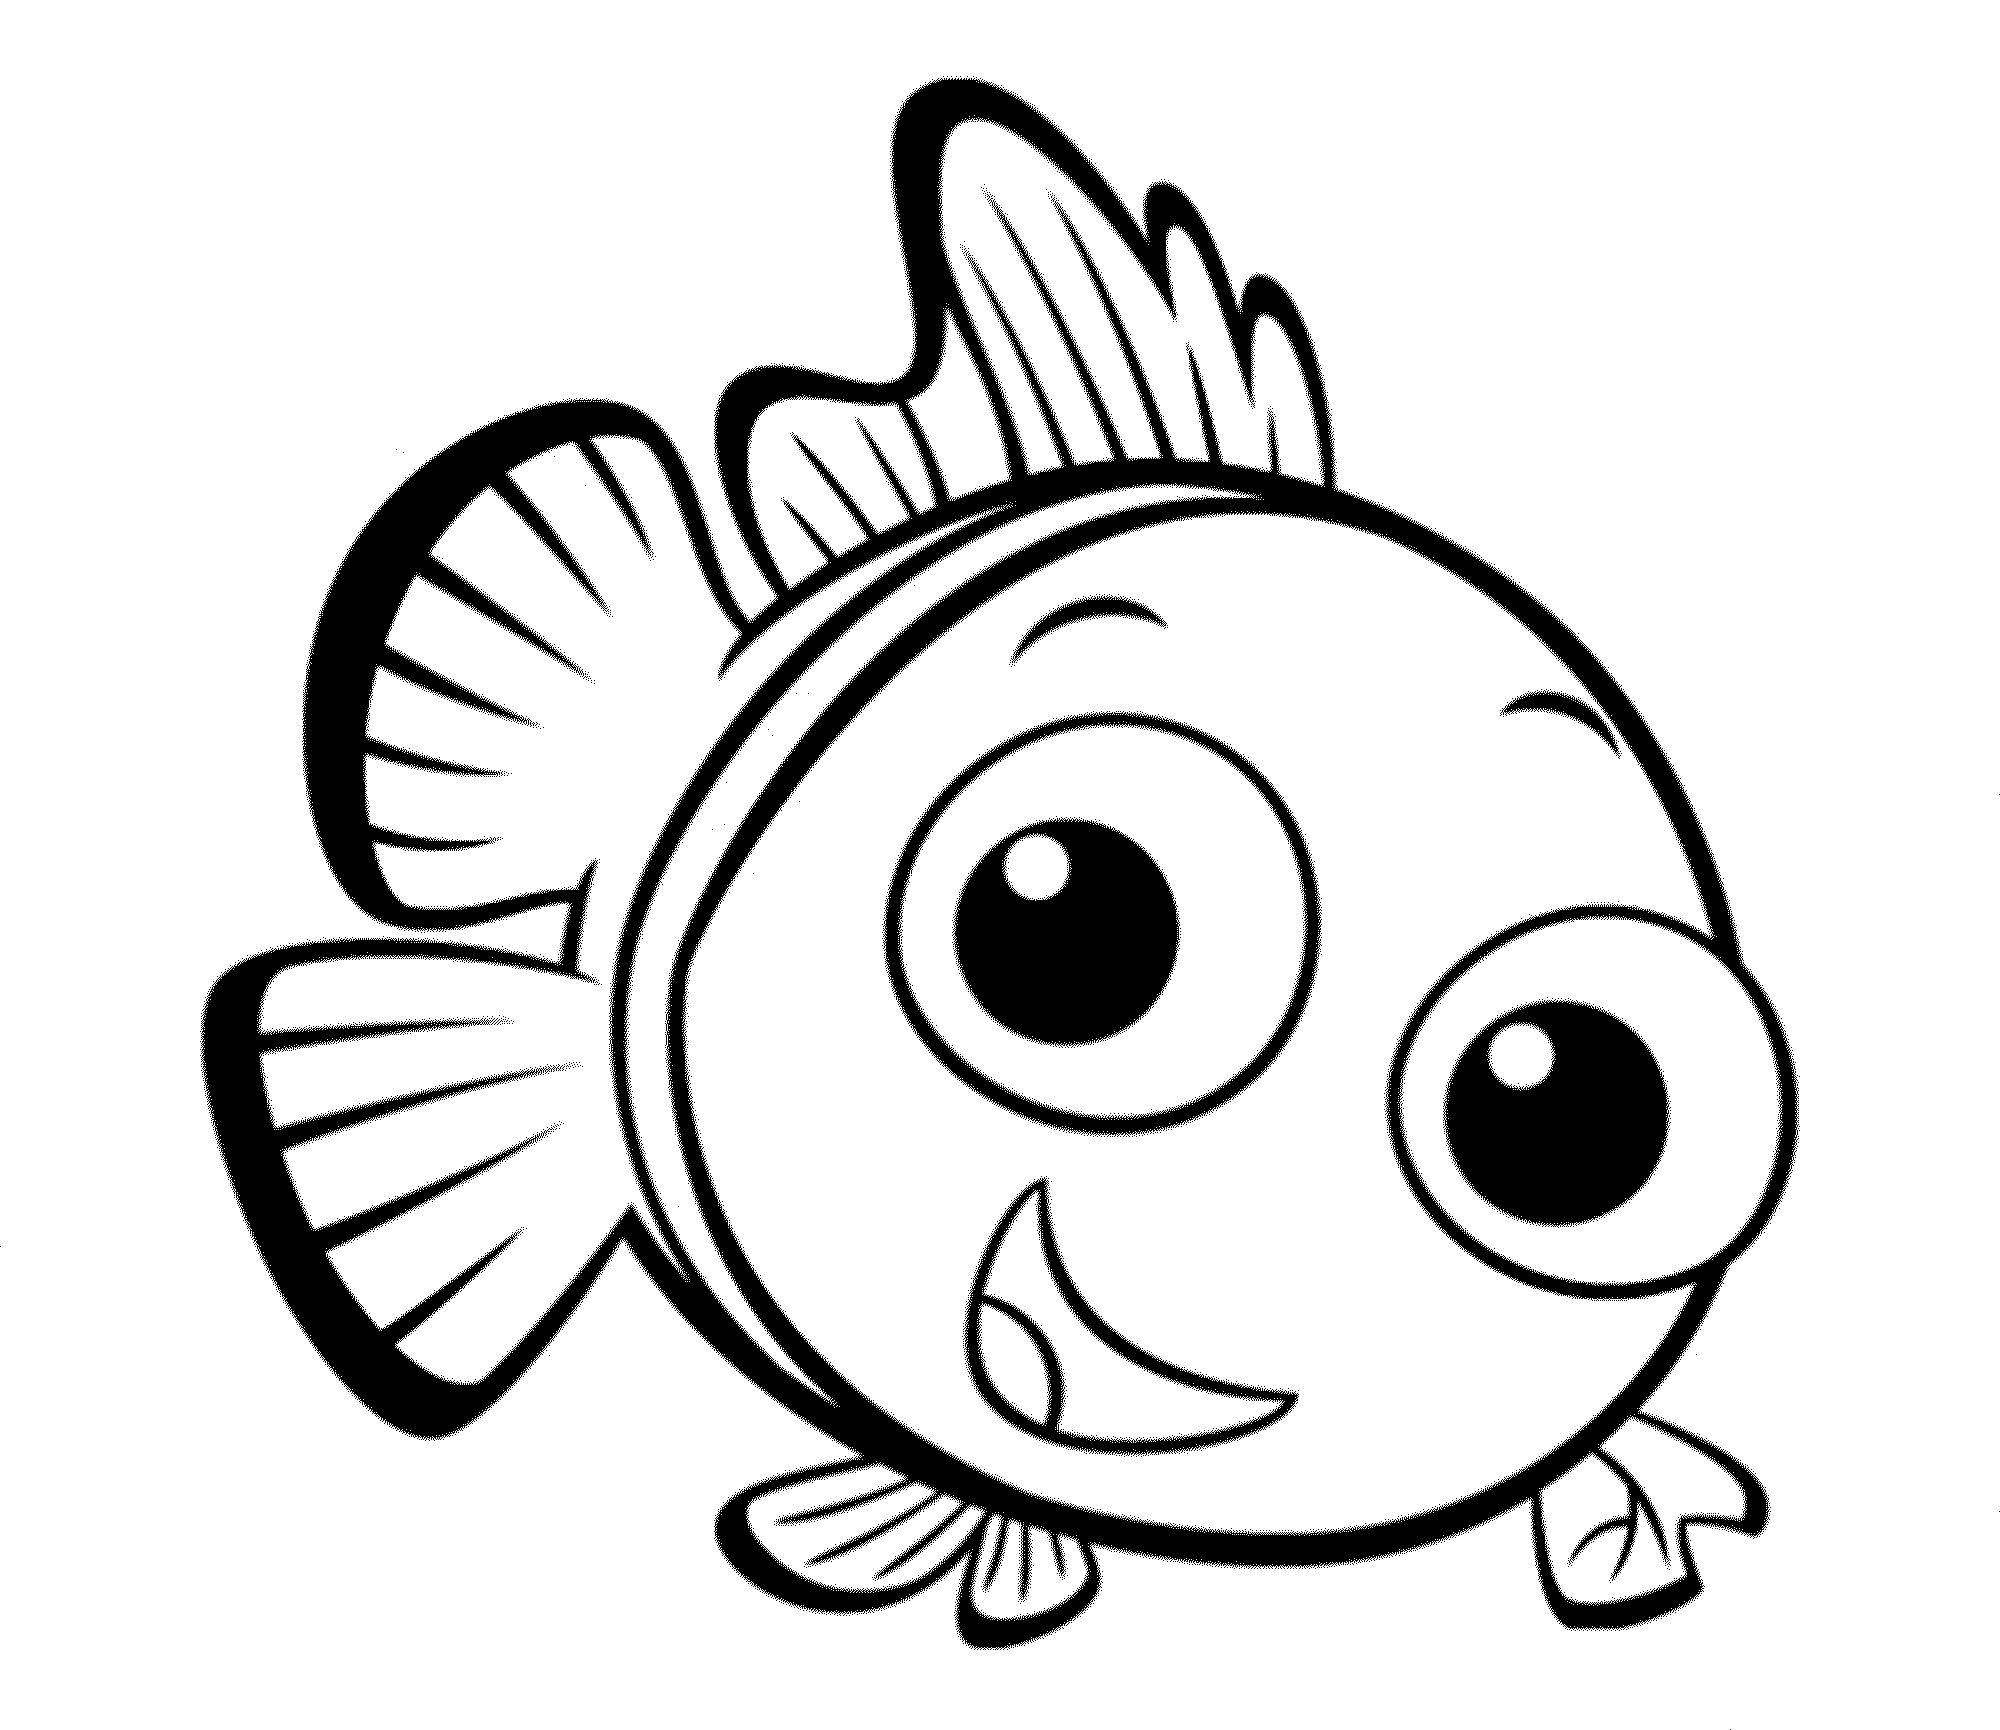 fish coloring pages for kids - photo#43